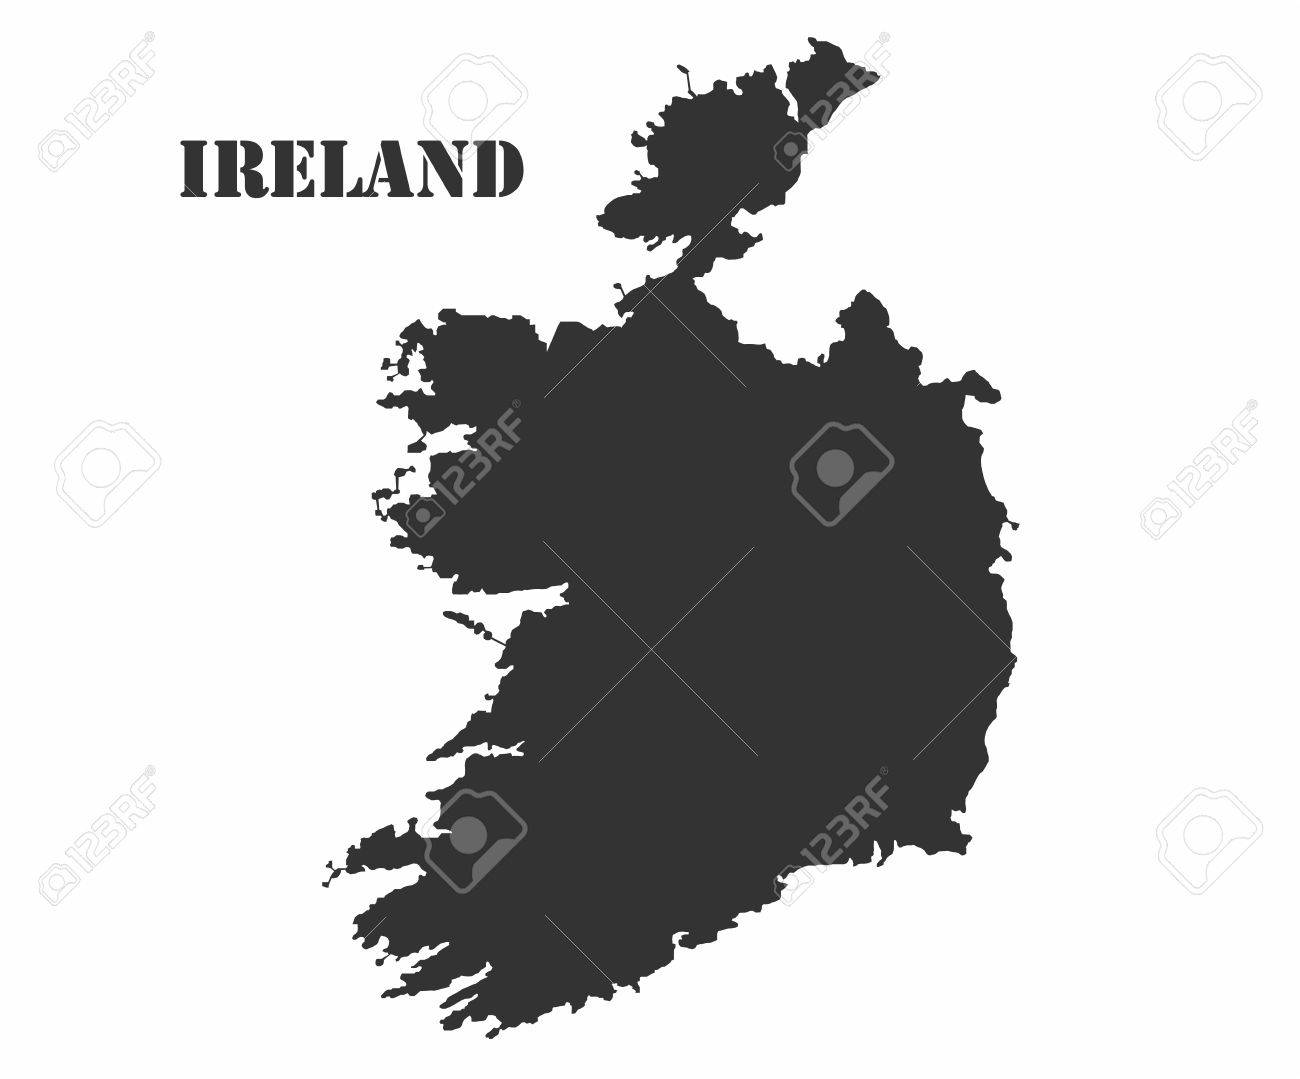 Map Of Ireland Vector.Concept Map Of Ireland Vector Design Illustration